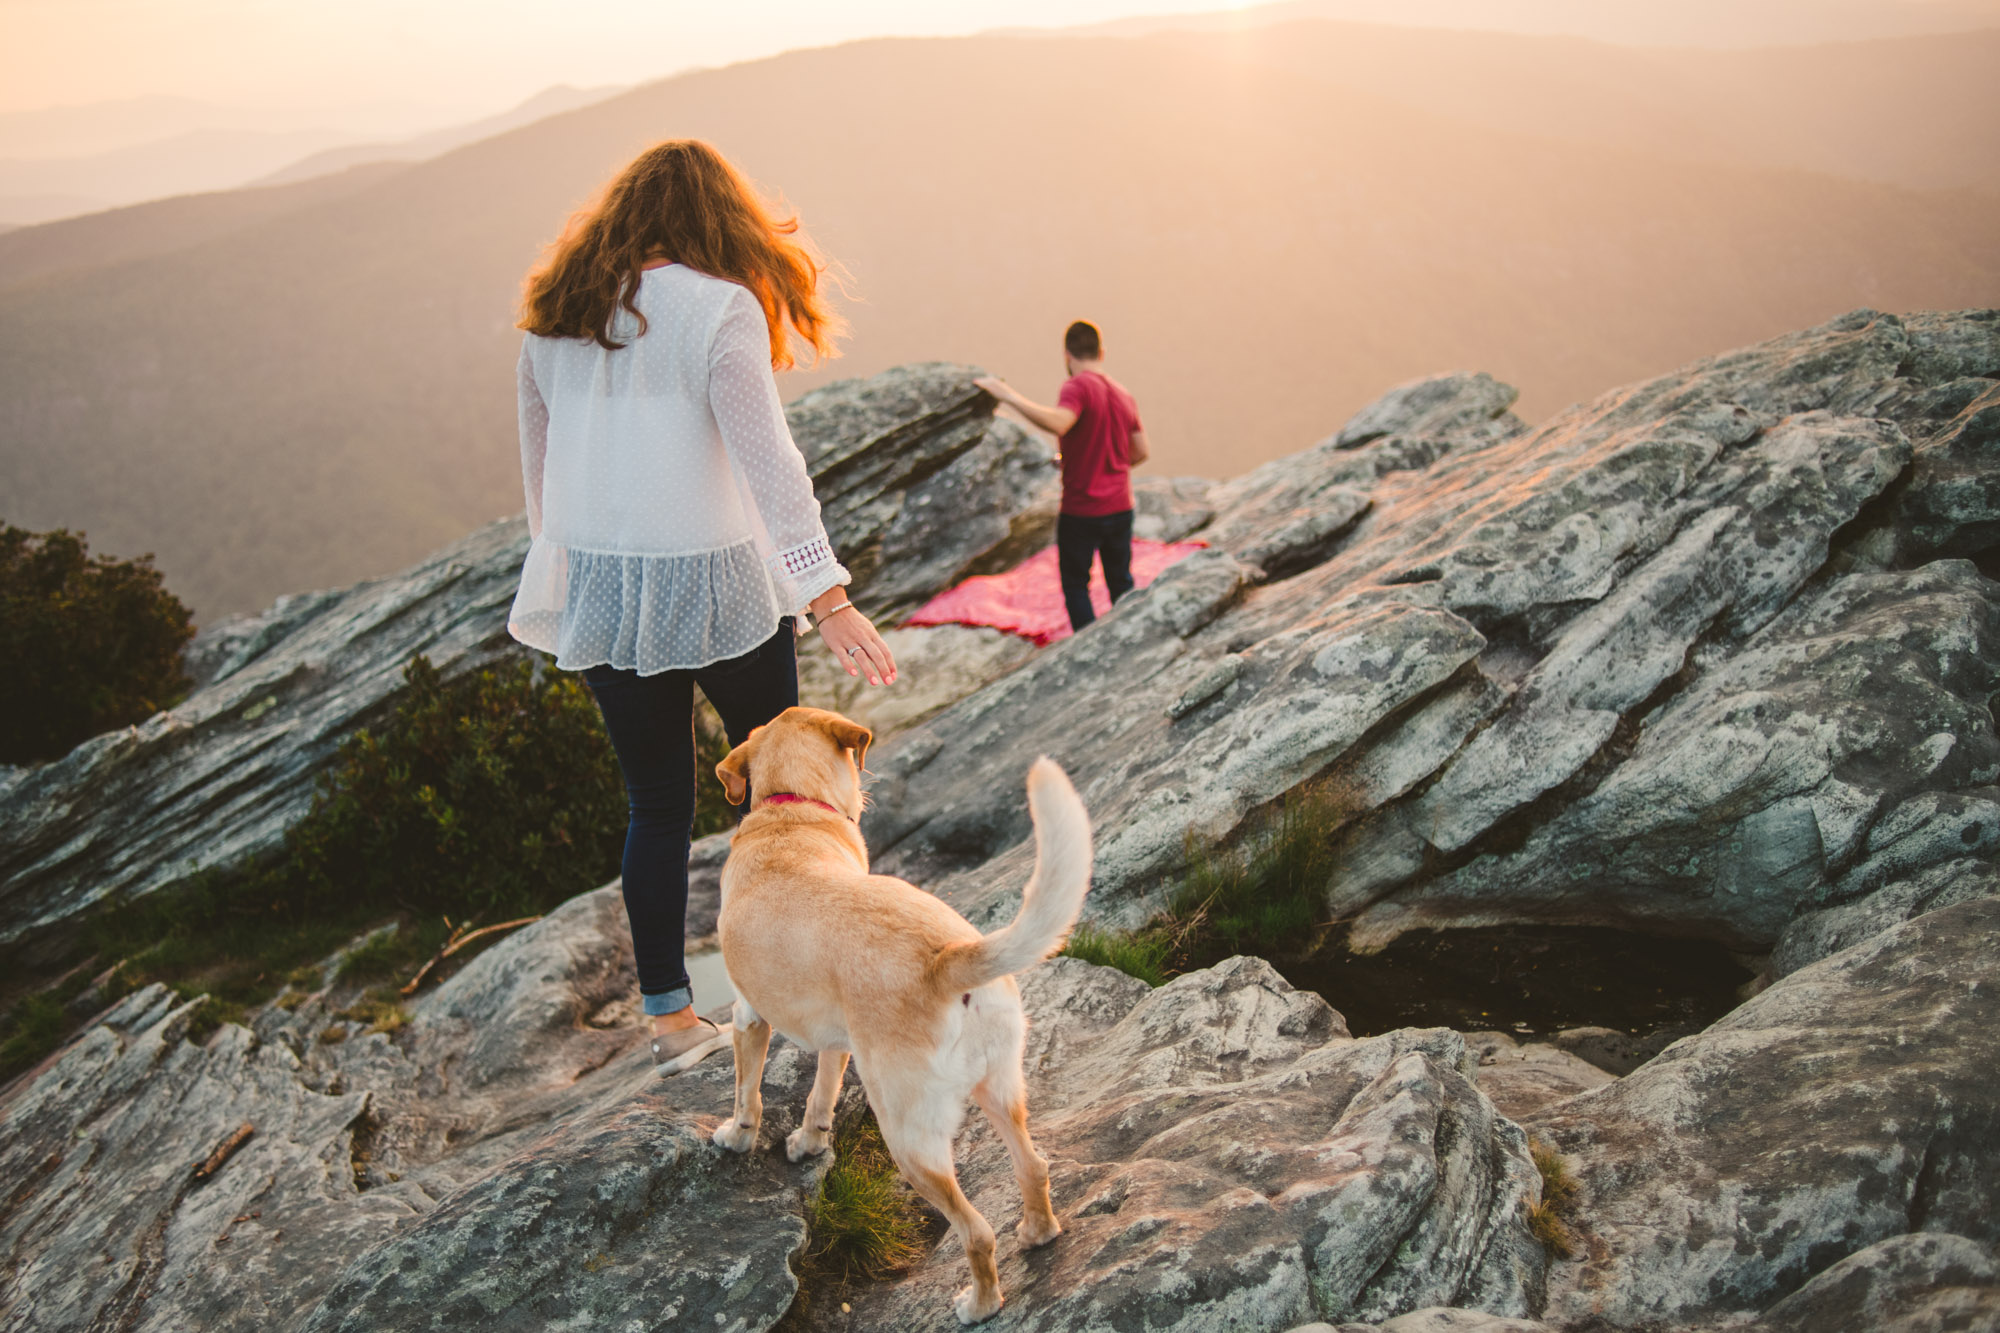 Sunset engagement photo in Linville Gorge